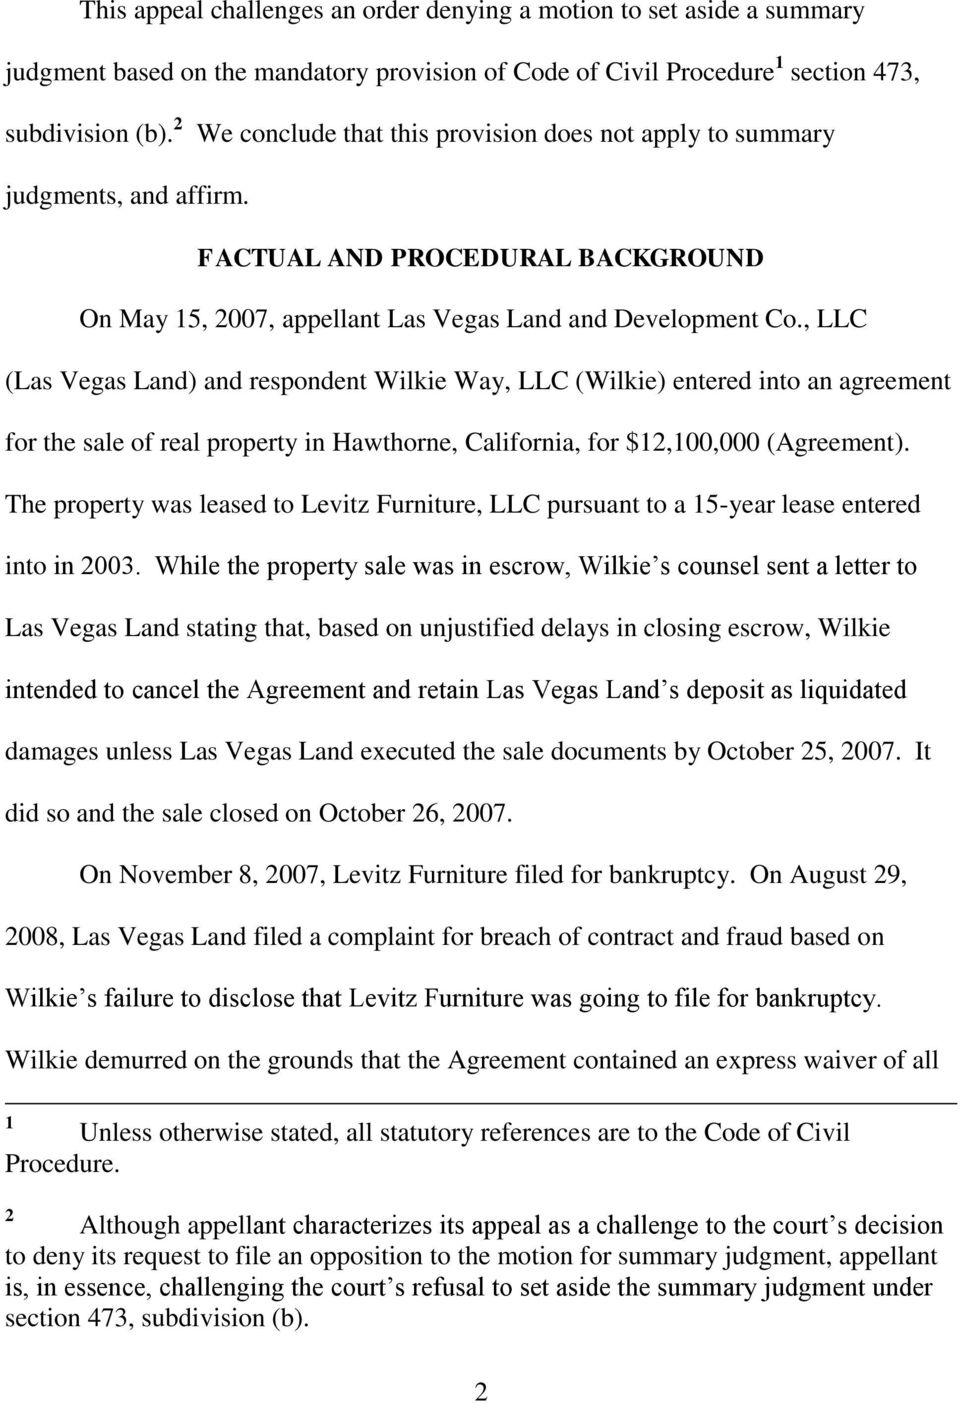 , LLC (Las Vegas Land) and respondent Wilkie Way, LLC (Wilkie) entered into an agreement for the sale of real property in Hawthorne, California, for $12,100,000 (Agreement).